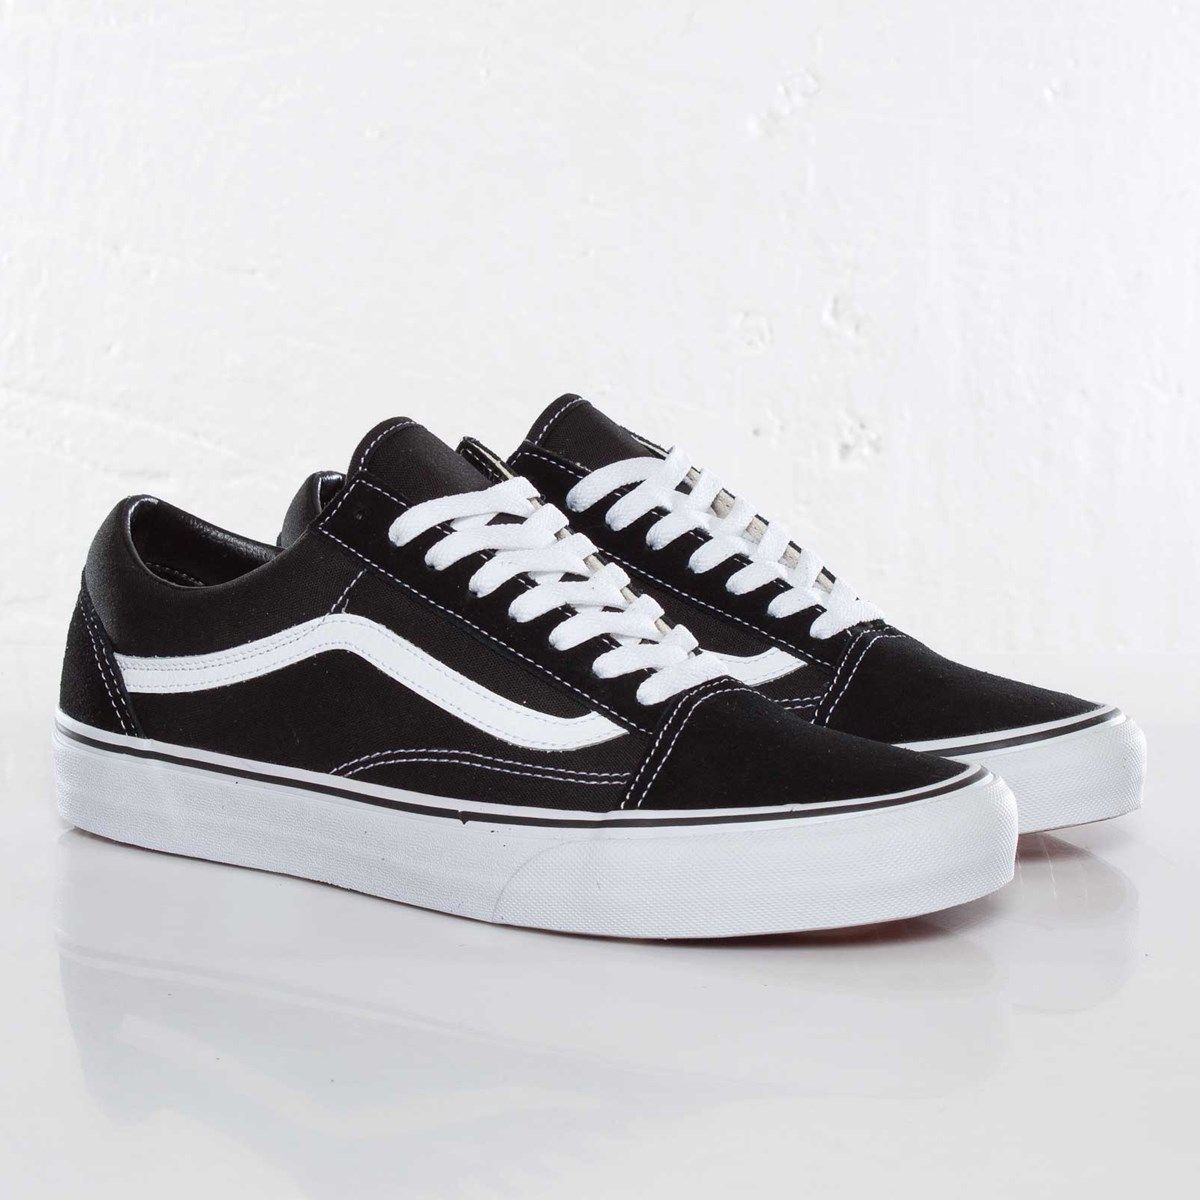 Vans Old Skool 82003 Sneakersnstuff | sneakers